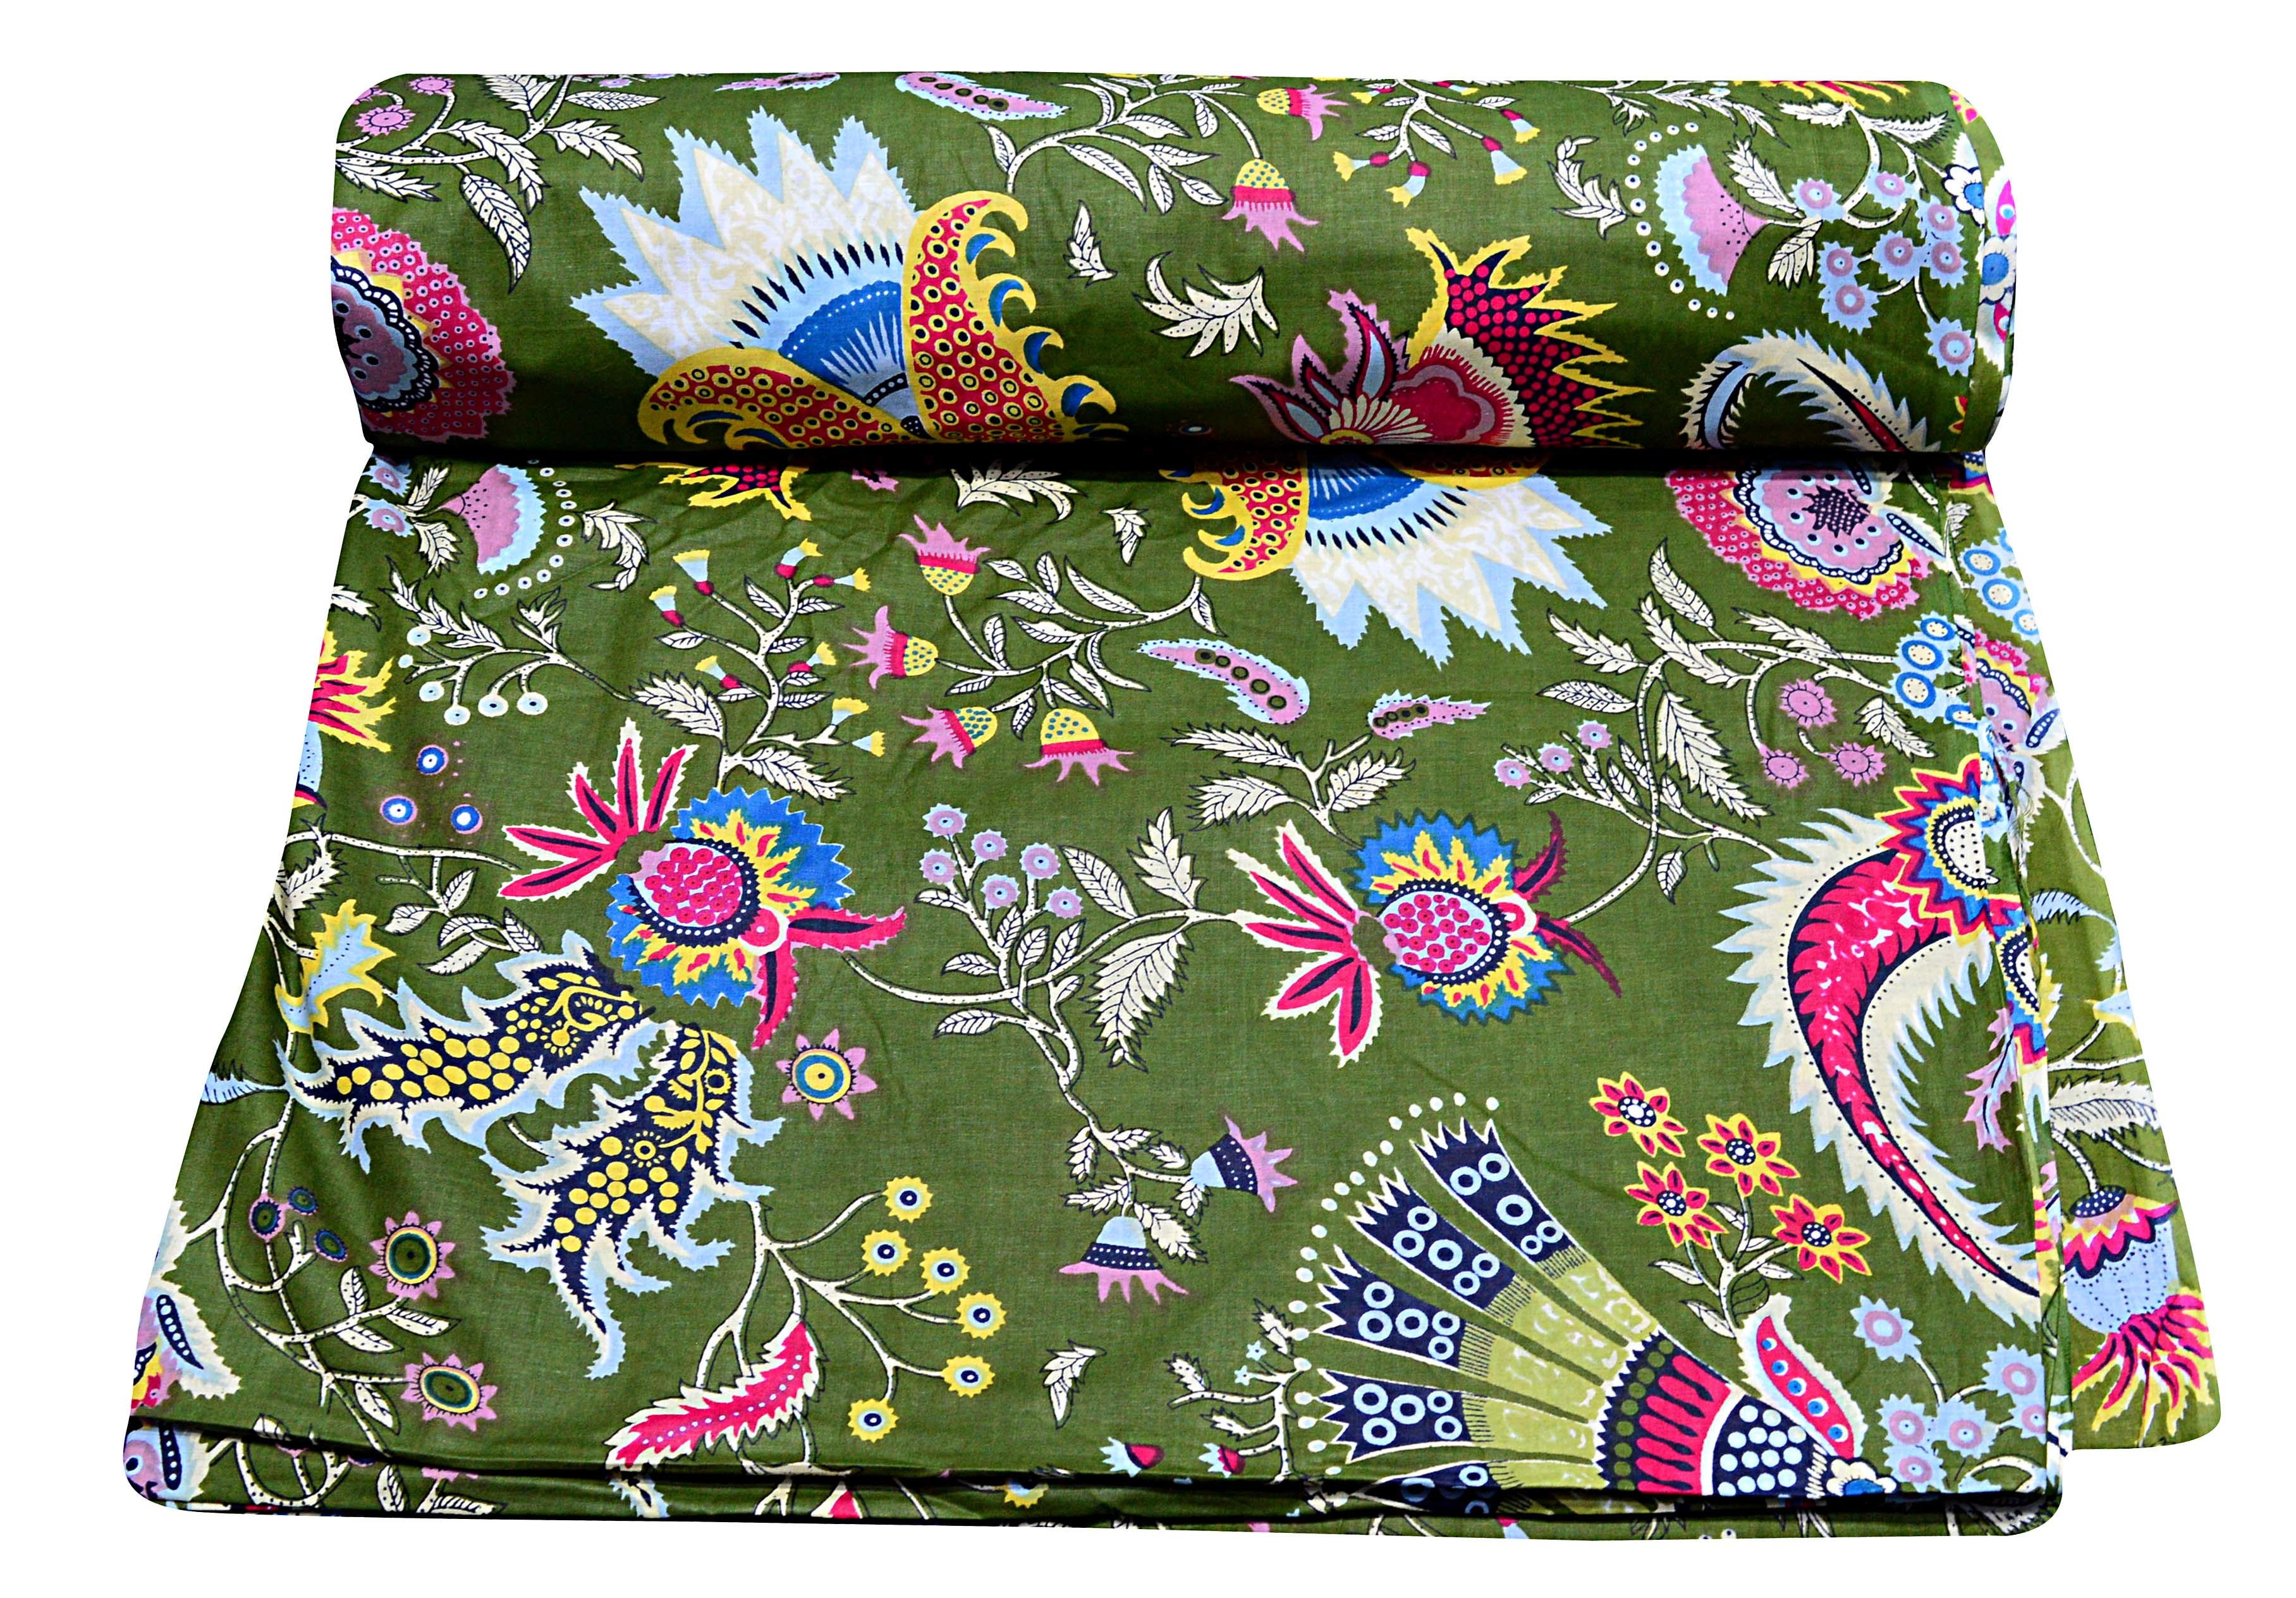 Exclusive Flower Printed 100% Cotton Sewing Material Running Fabric